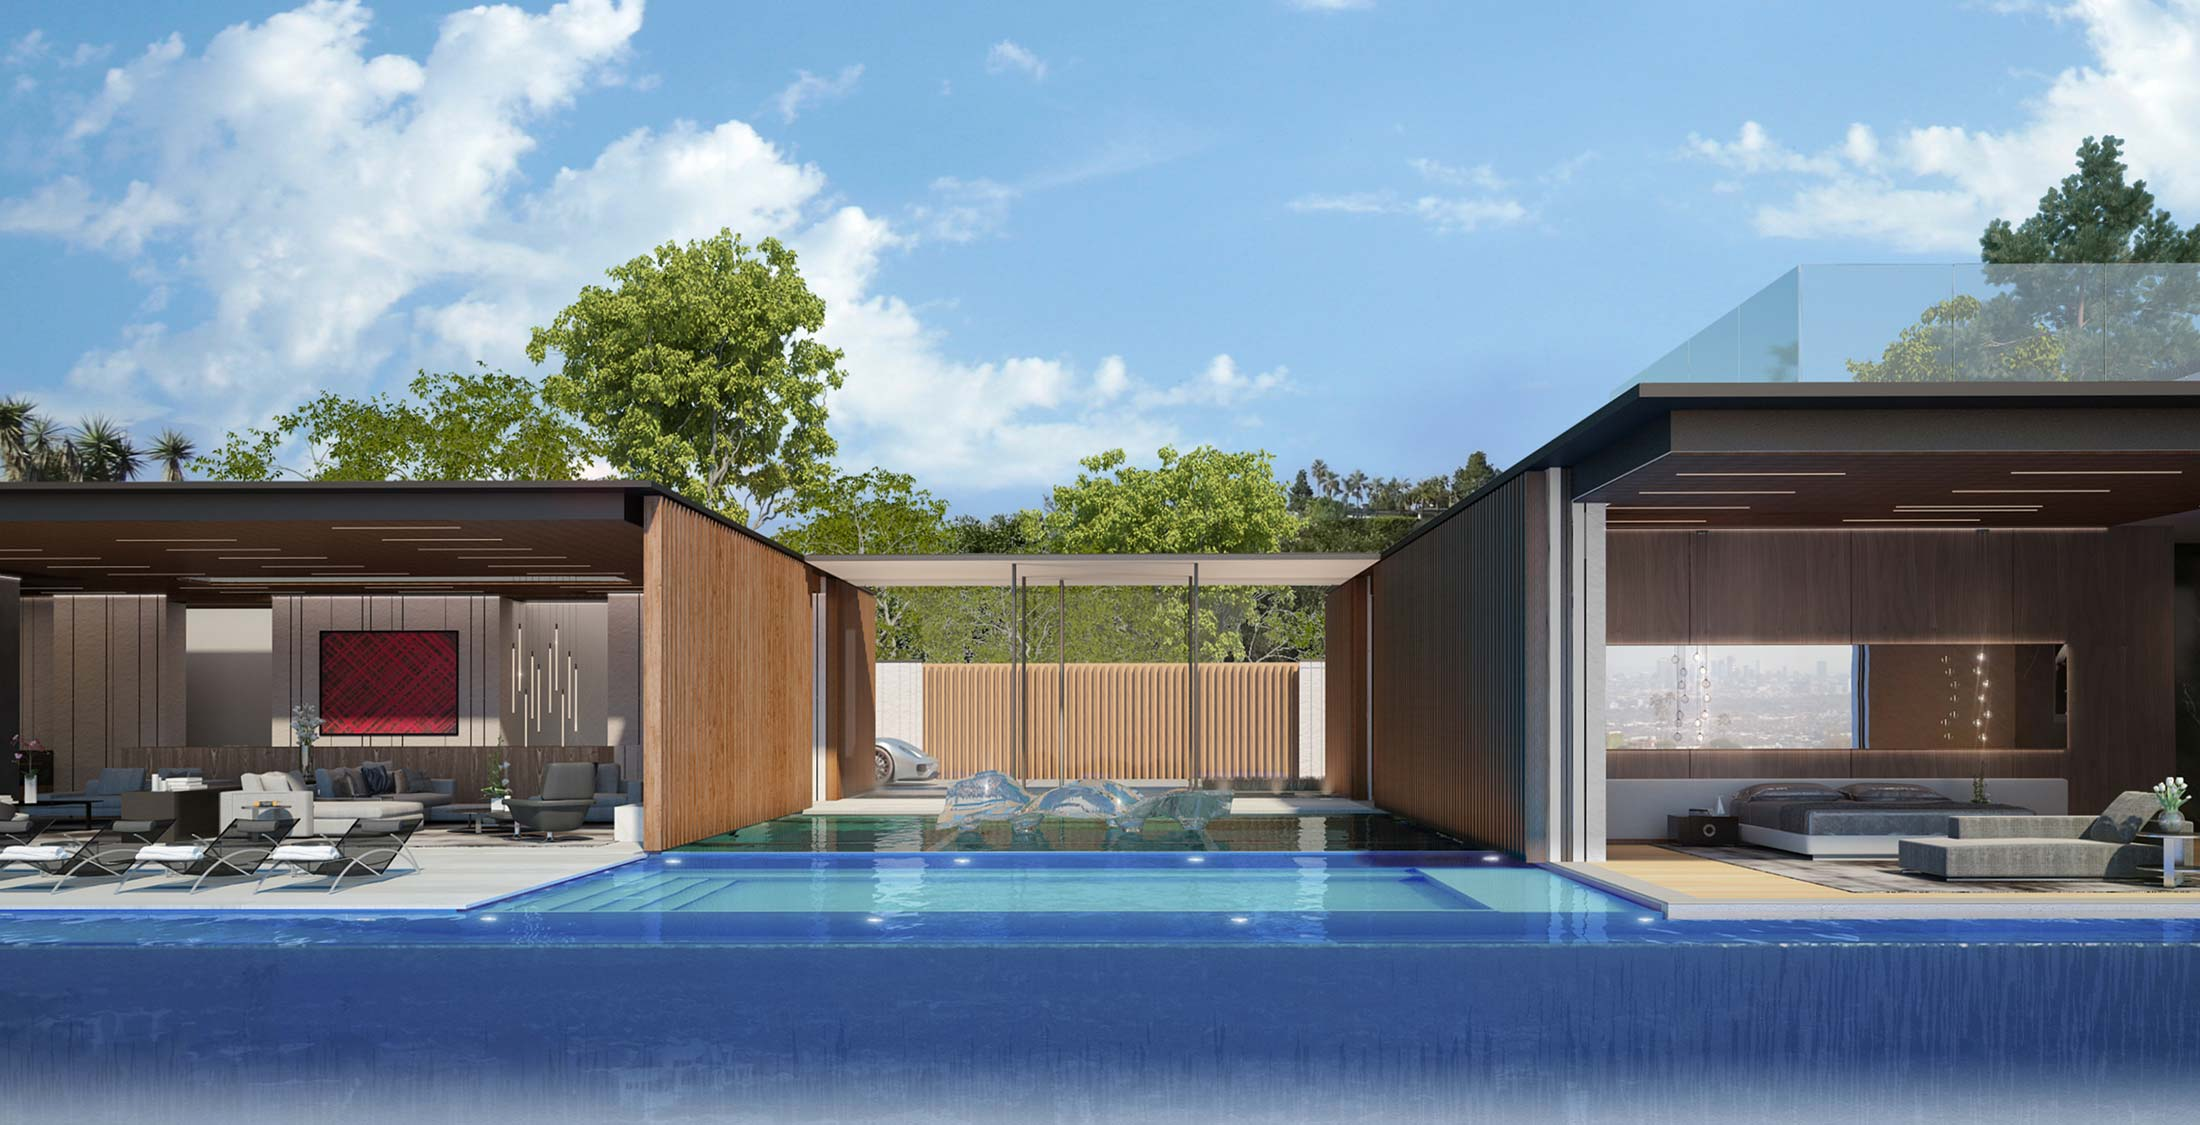 modern-architecture-residential-wood-indoor-outdoor-pool-shubindonaldson-1169hillcrest-6